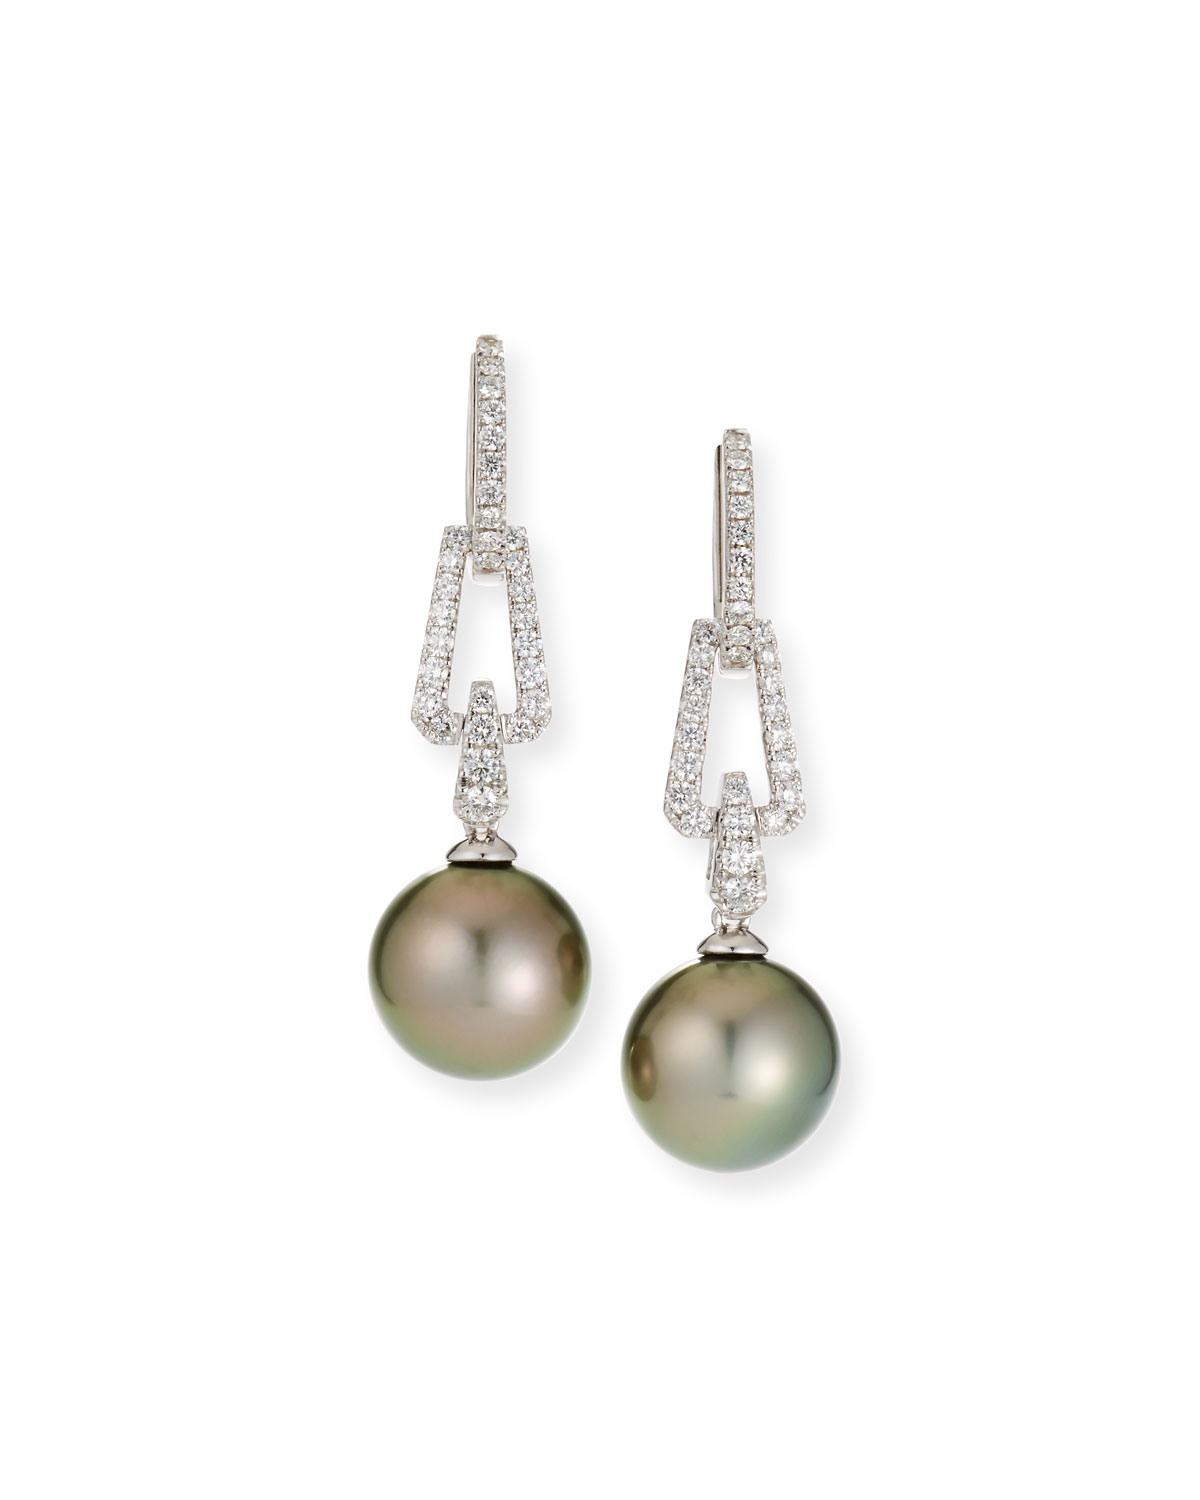 Belpearl 18k White Gold Diamond Interlock & Pearl Earrings